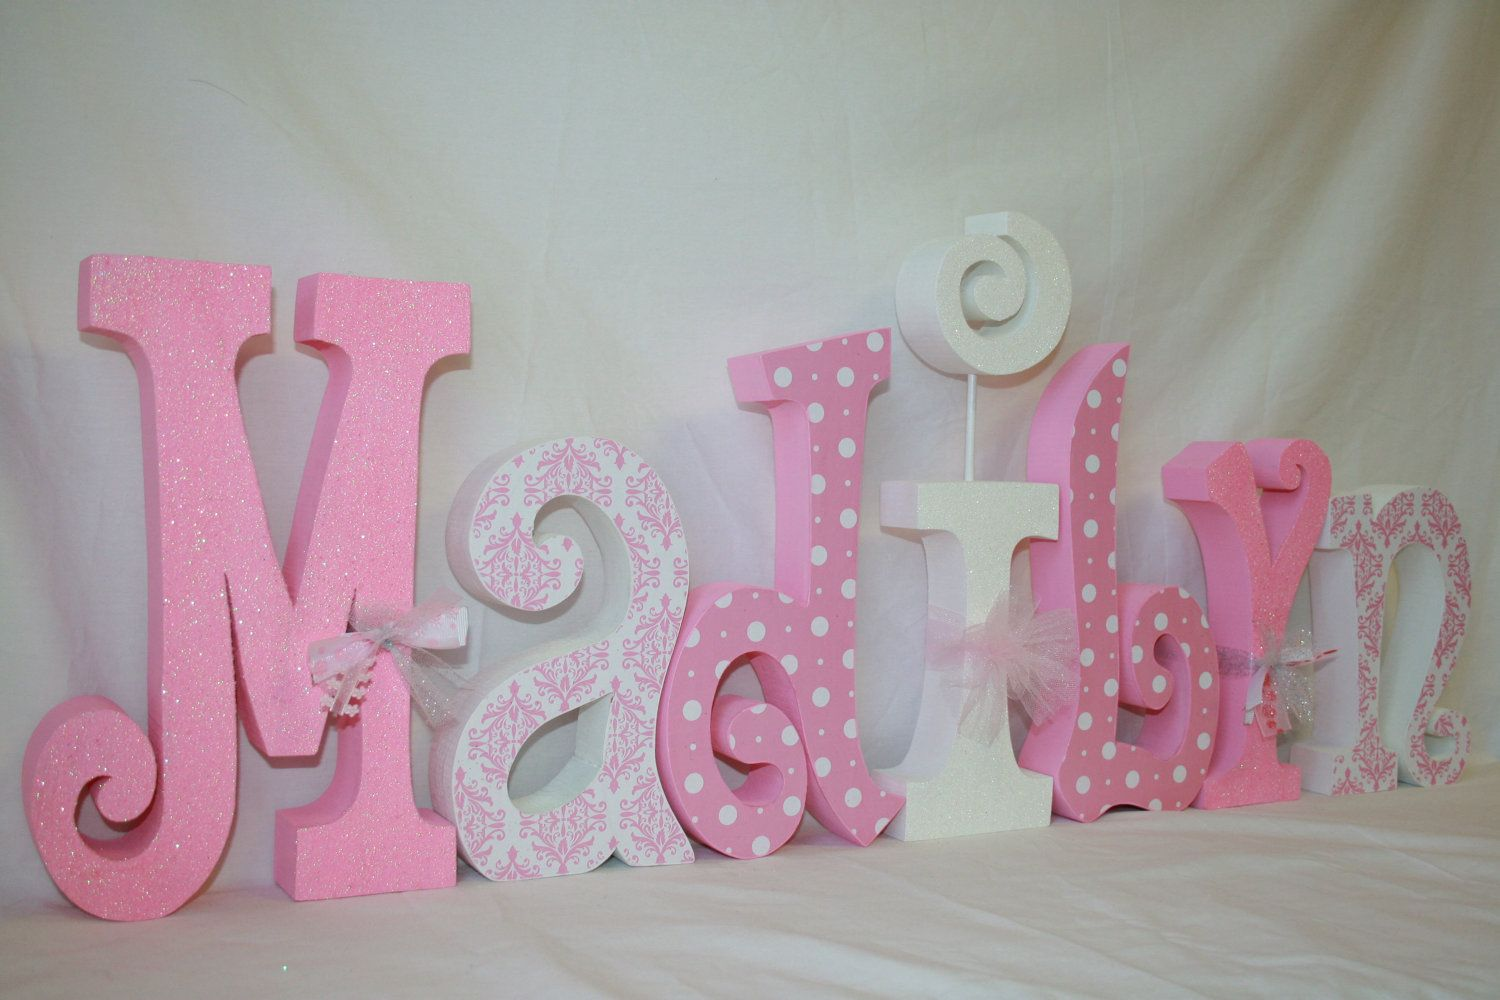 Bedroom Decor Letters girl decor, pink and white, white polka dots, 7 letter set, girls